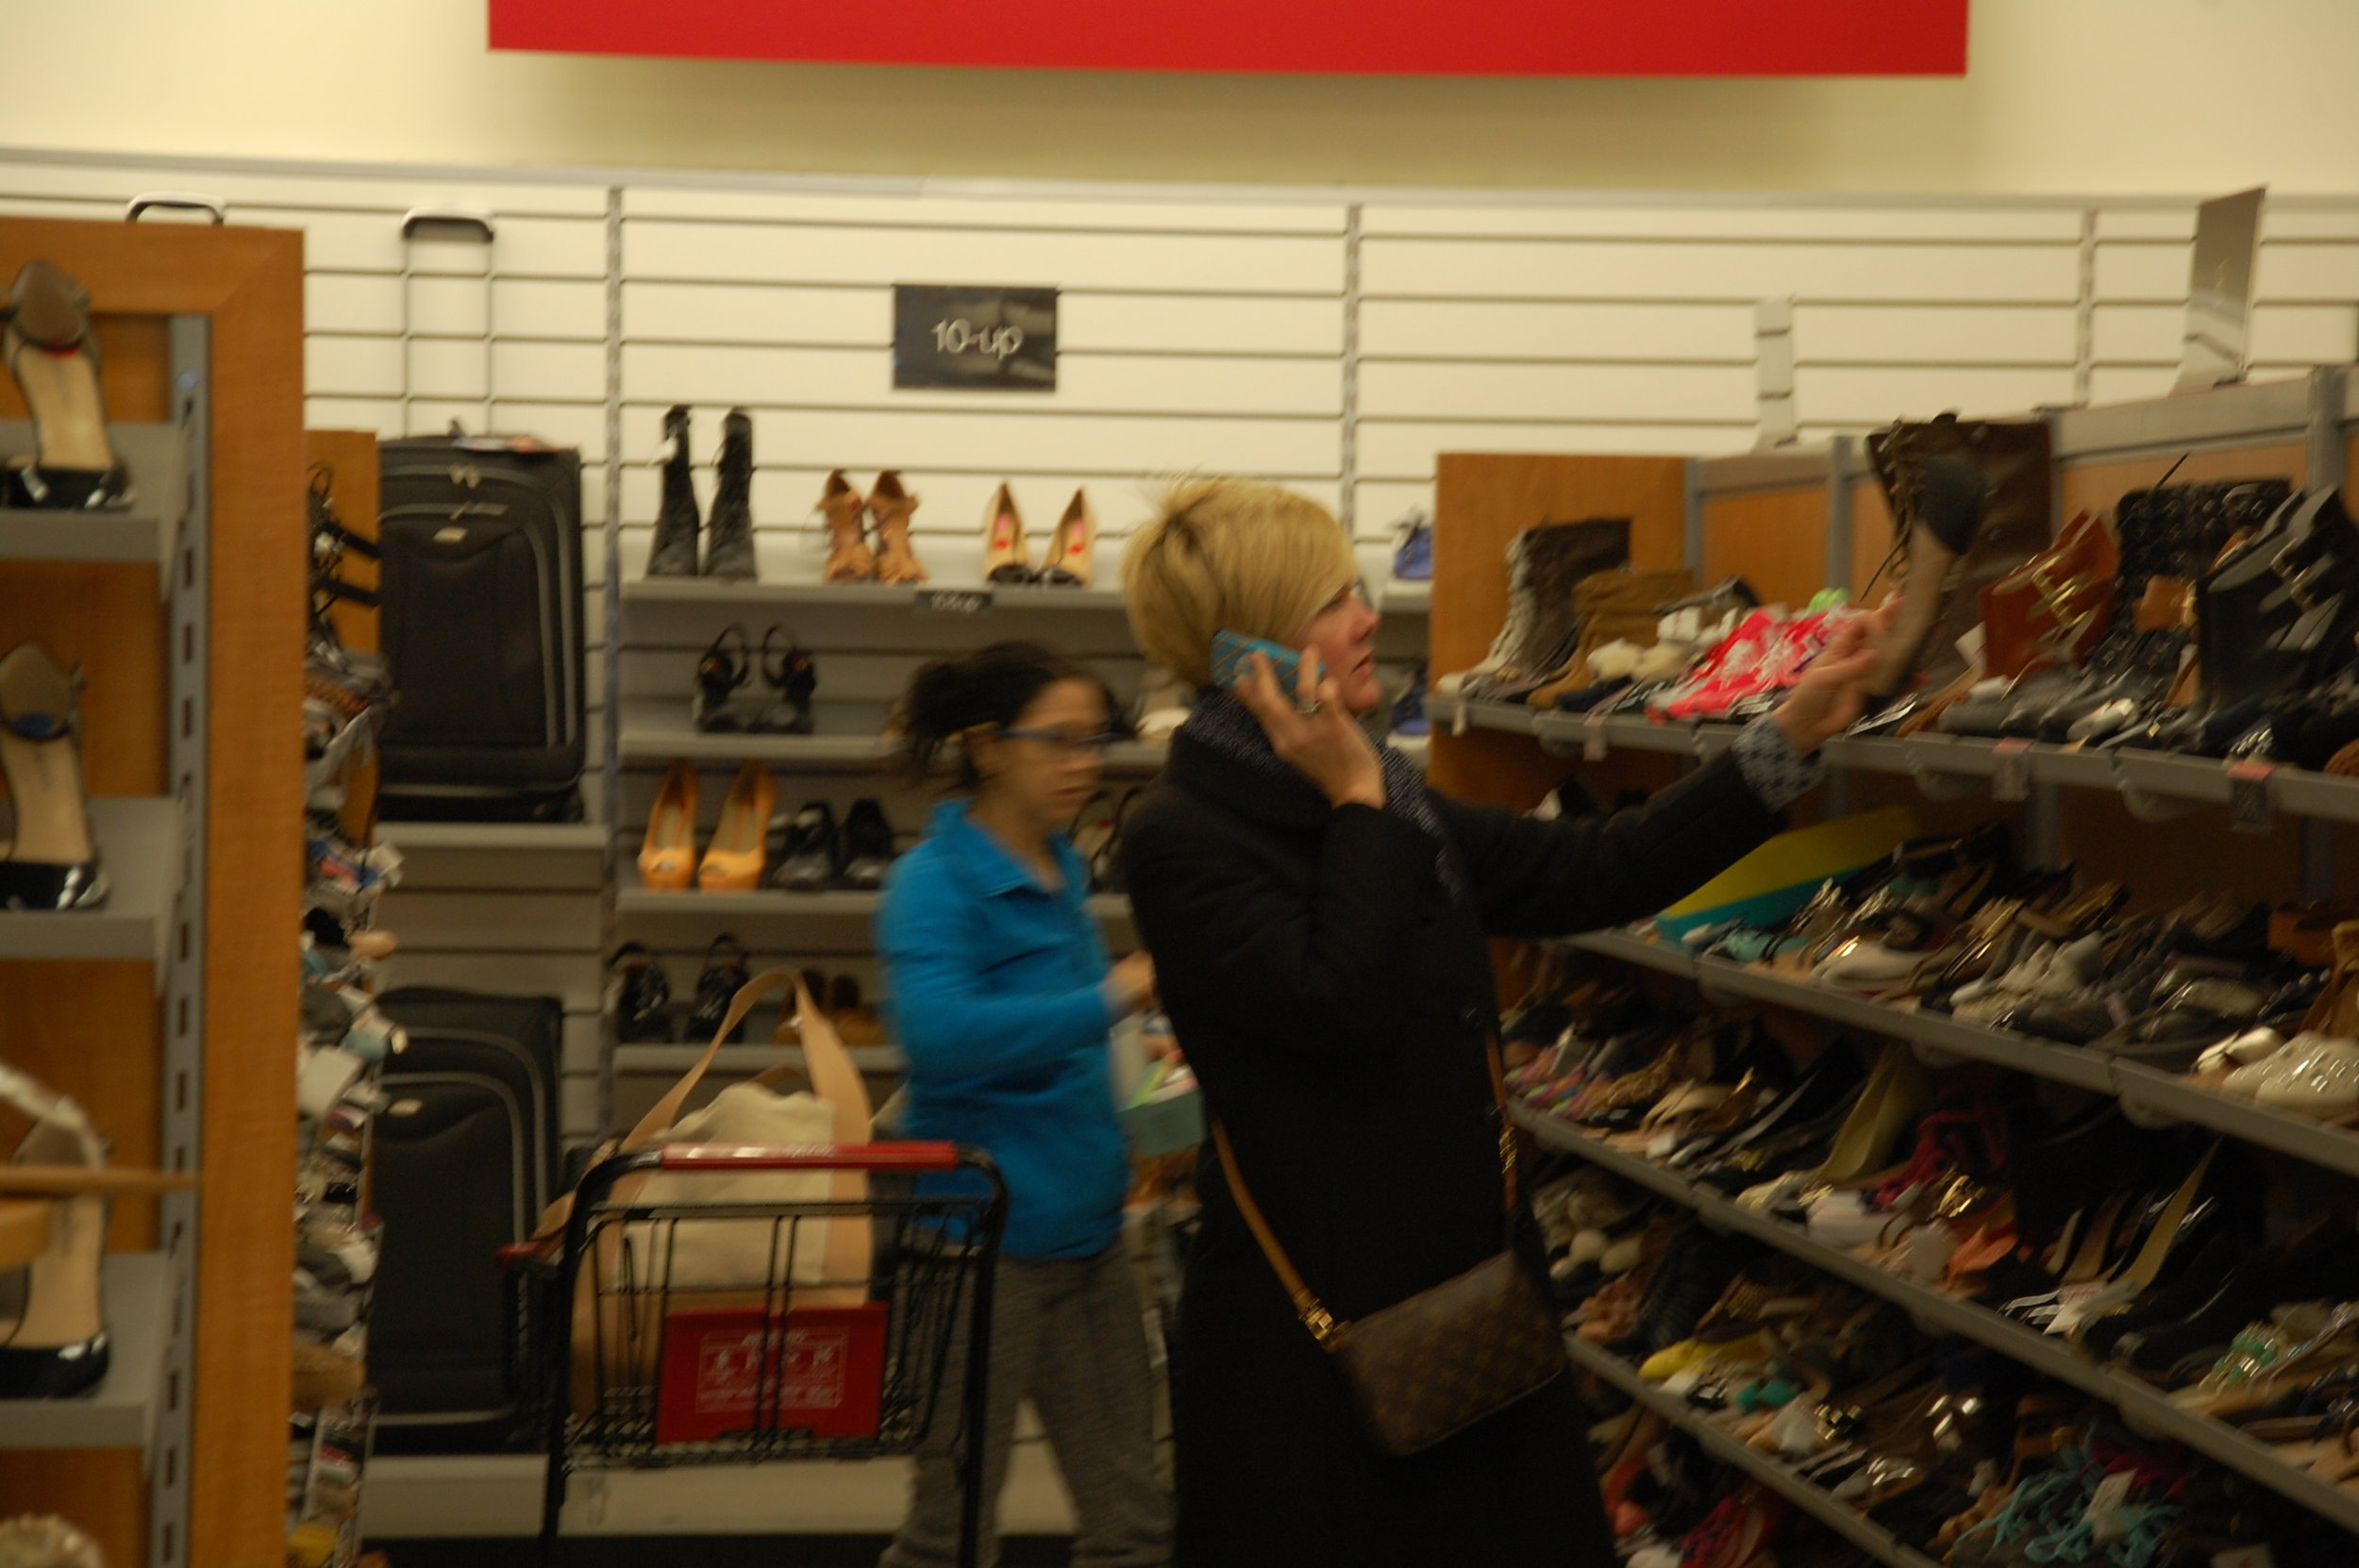 A shopper considers a pair of shoes. Will she take it home?